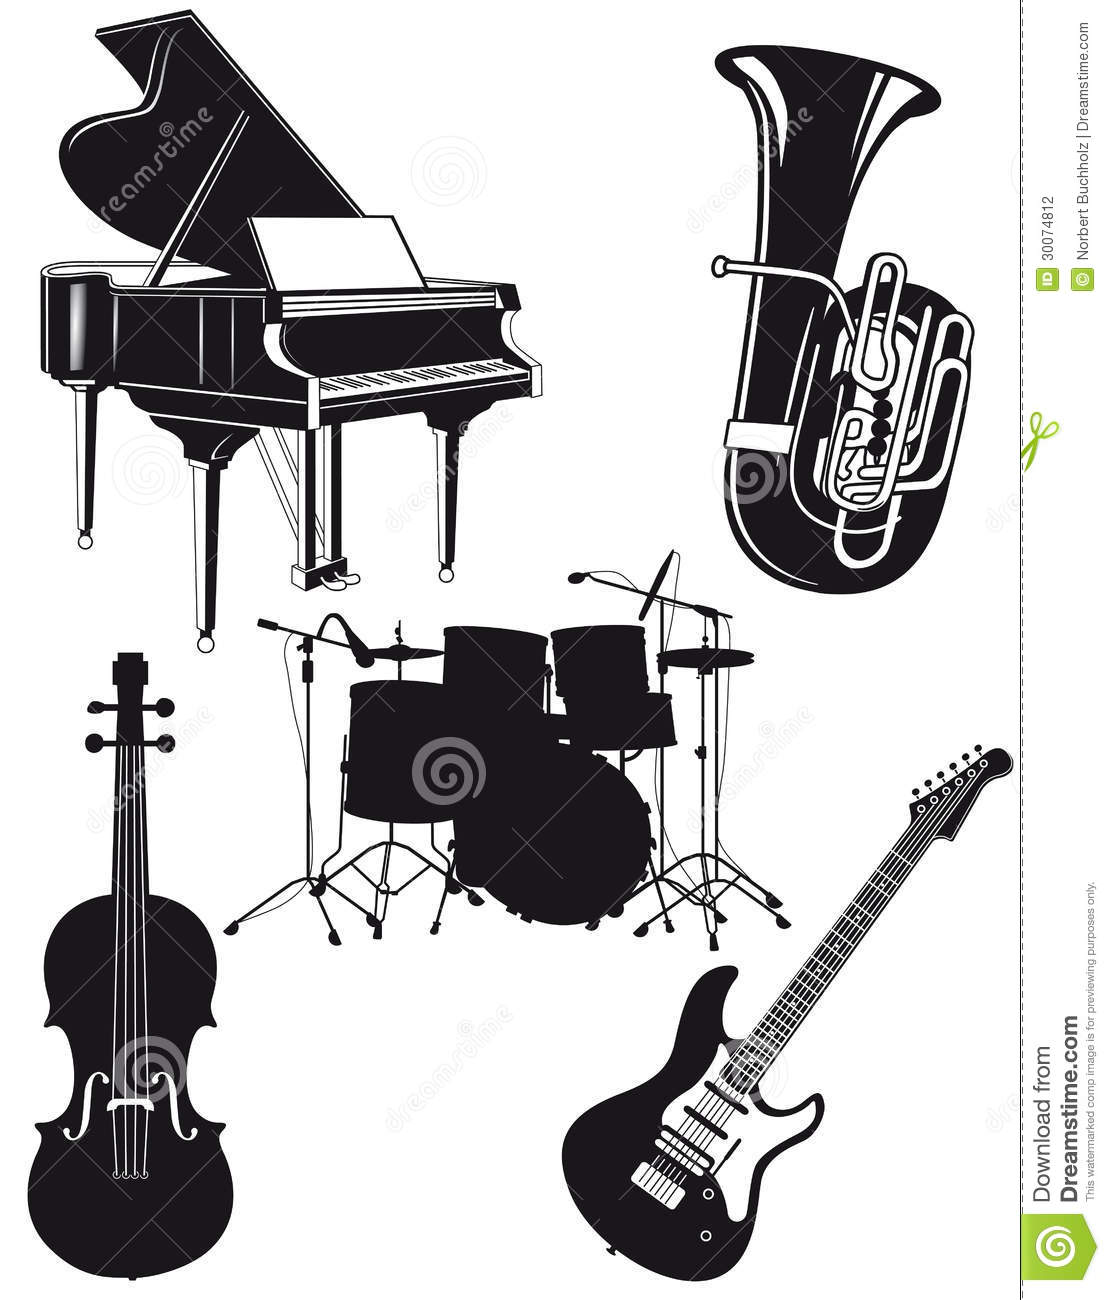 Of Black Orchestral And Musical Instruments On A White Background